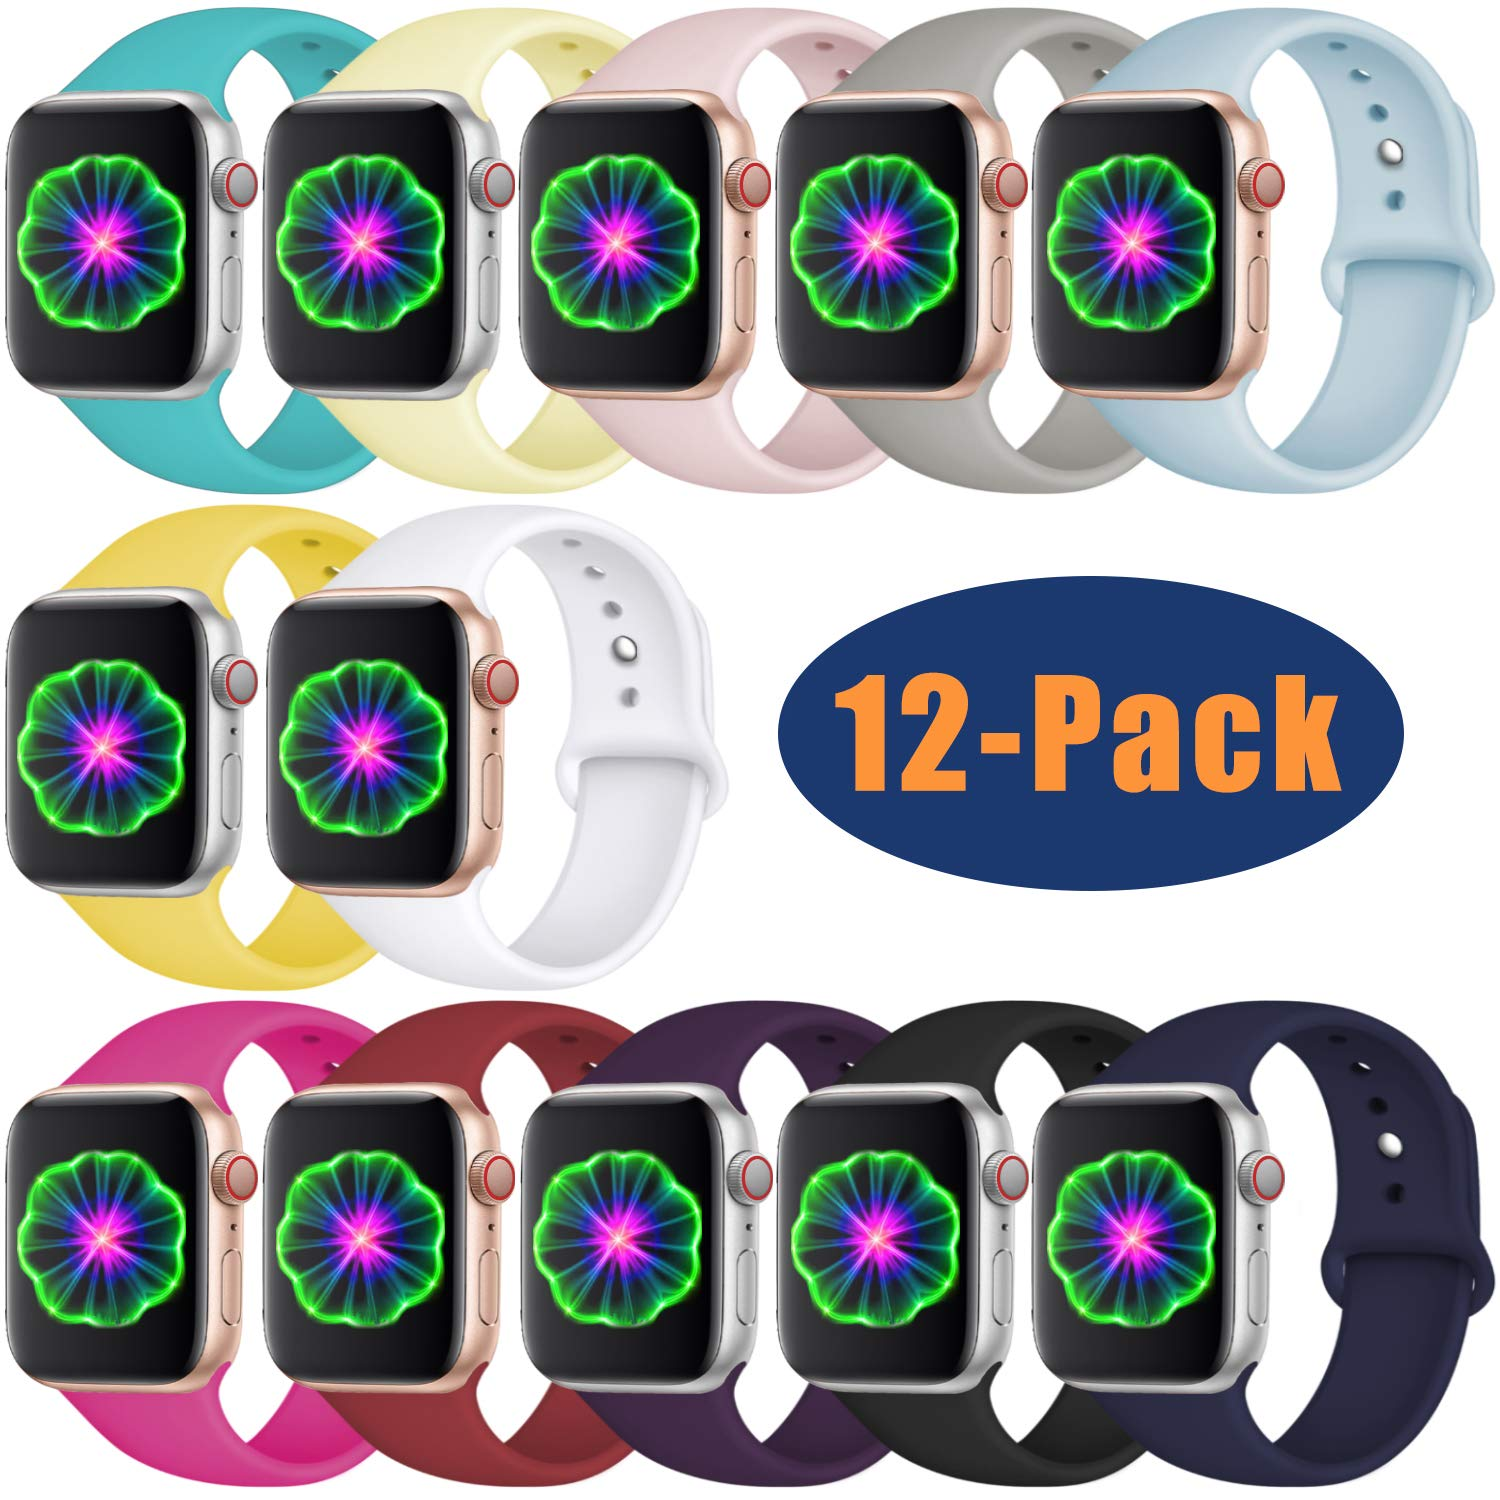 Laffav Compatible with Apple Watch Band 38mm 40mm, Small/Medium, for Women Men, Silicone Sport Replacement Band Compatible with iWatch Series 3, Series 4, Series 2, Series 1, 12-Pack